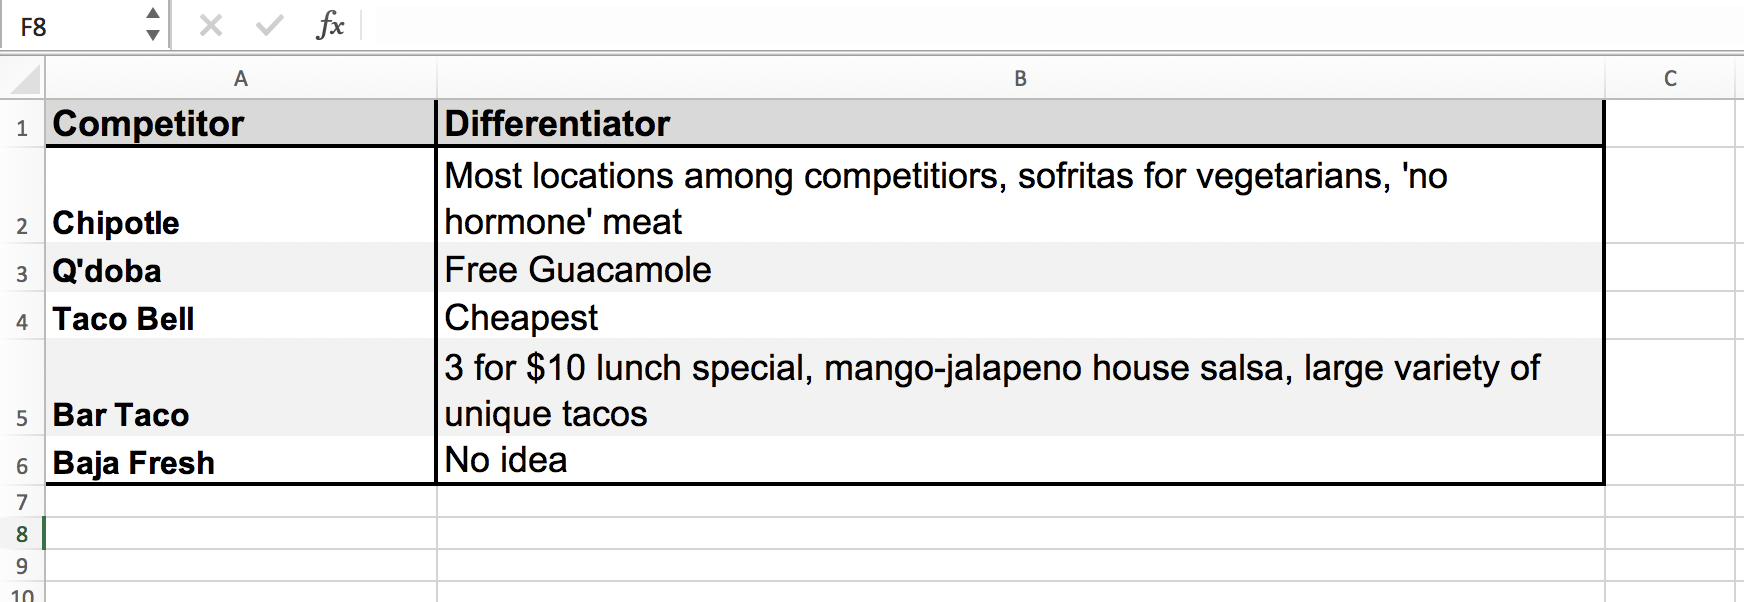 Basic differentiator chart for tacos.